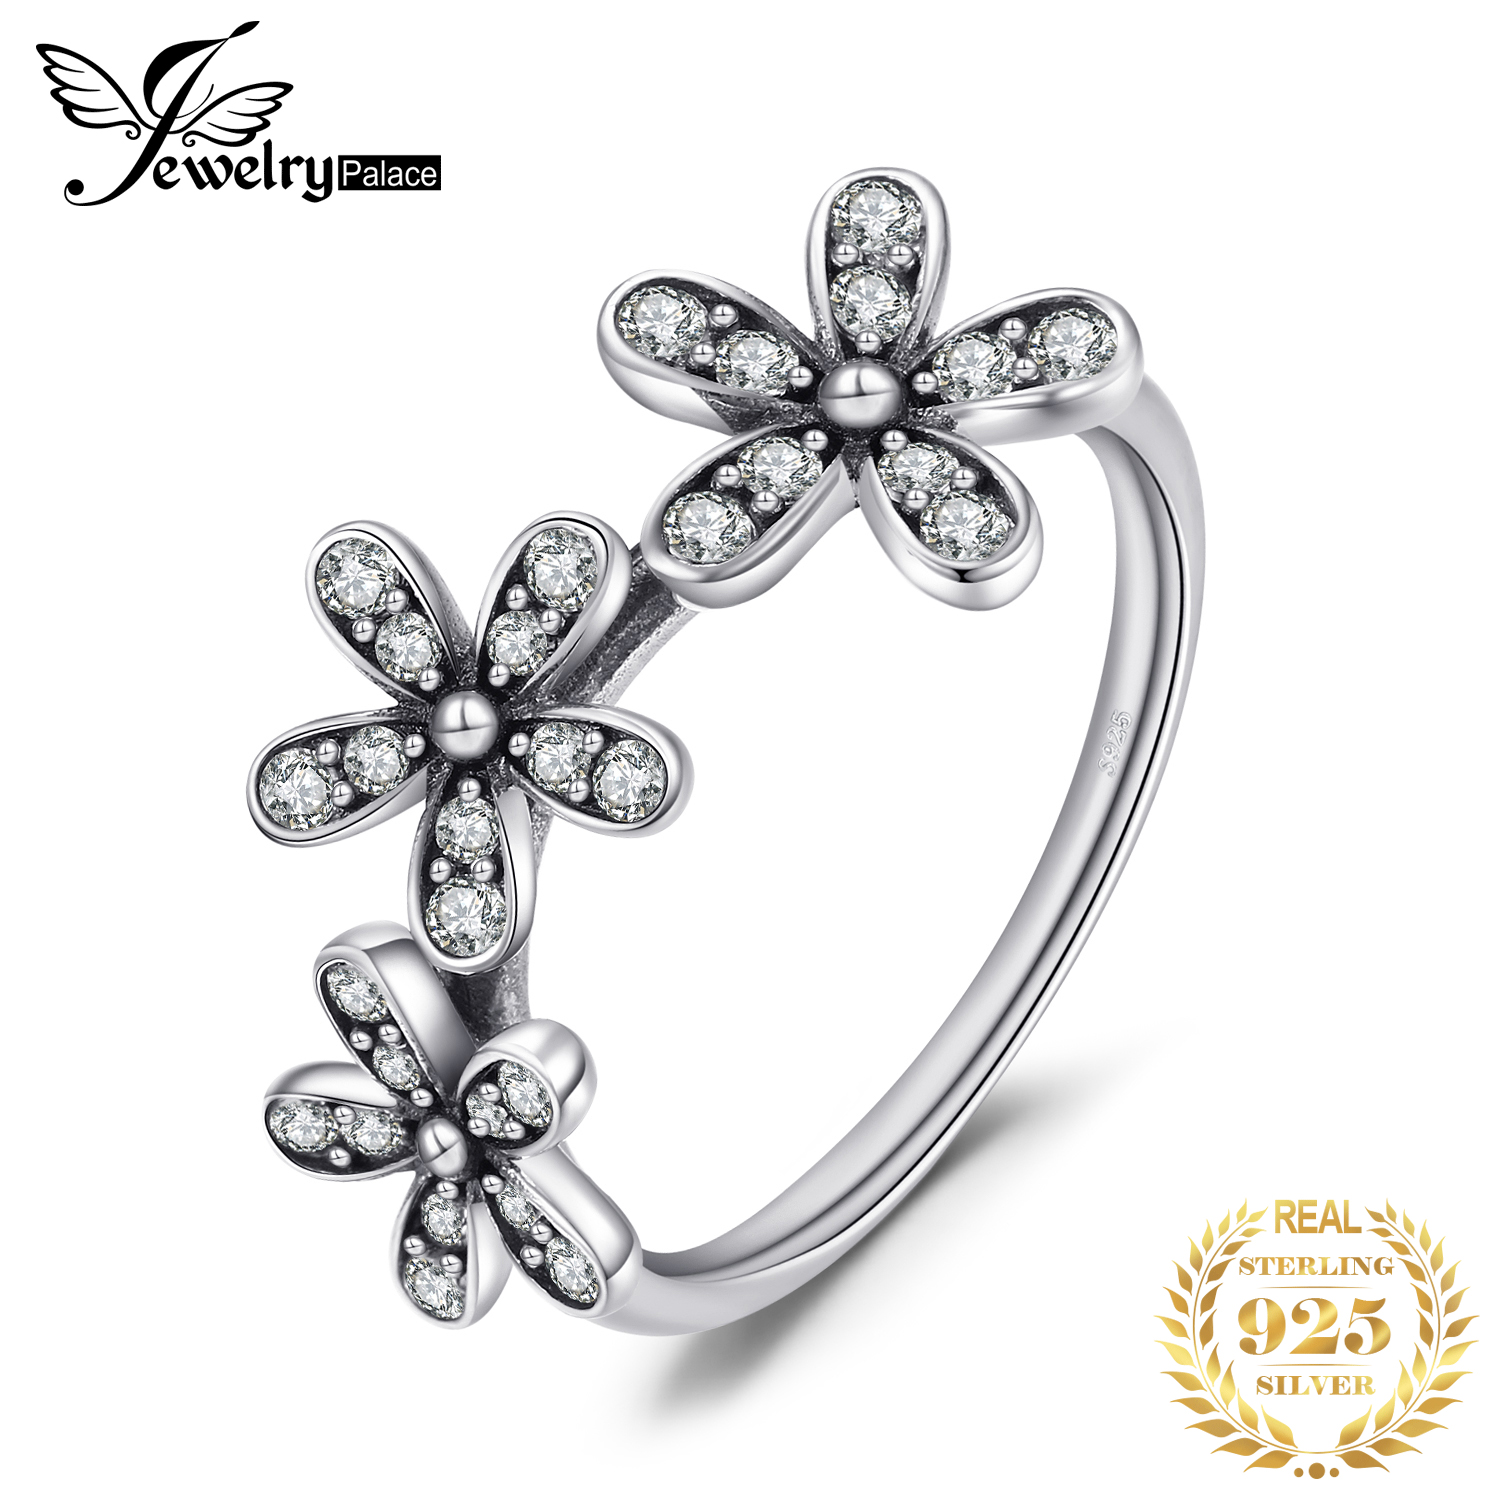 Jewelrypalace 925 Sterling Silver Shimmering Daisies Cubic Zirconia Ring Gifts For Women Anniversary Gifts Fashion Jewelry